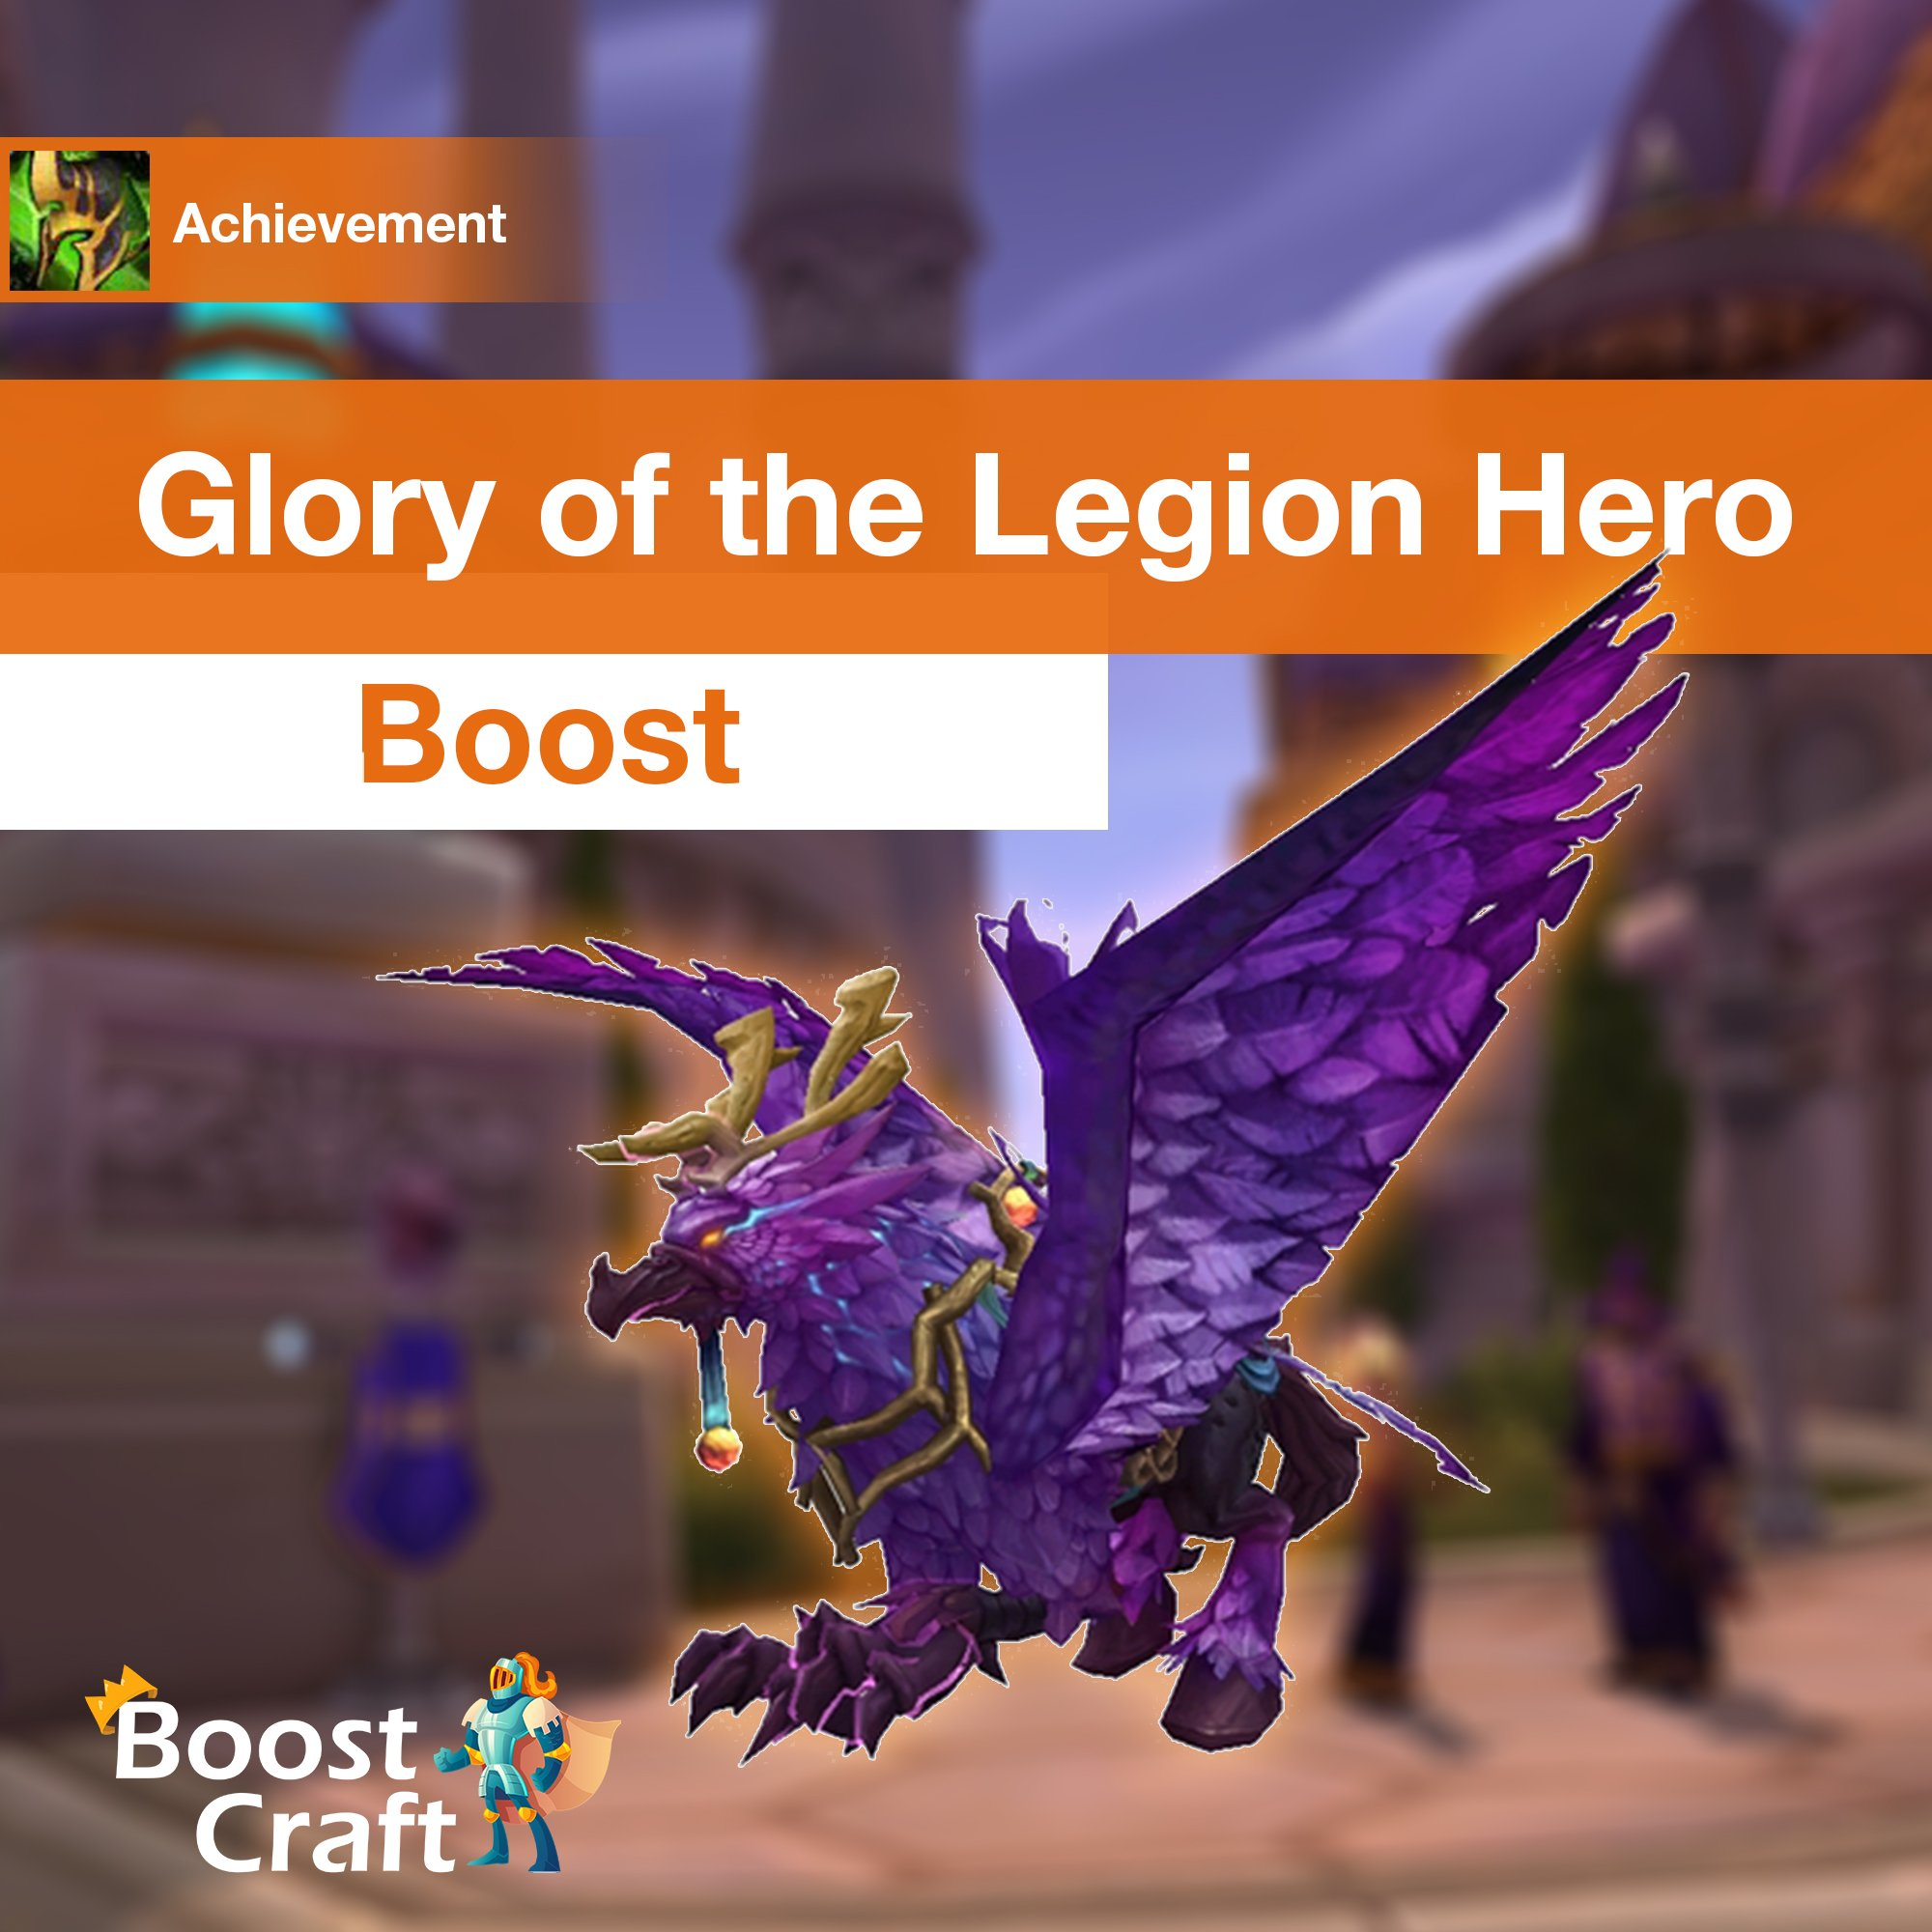 [Glory of the Legion Hero] Boost